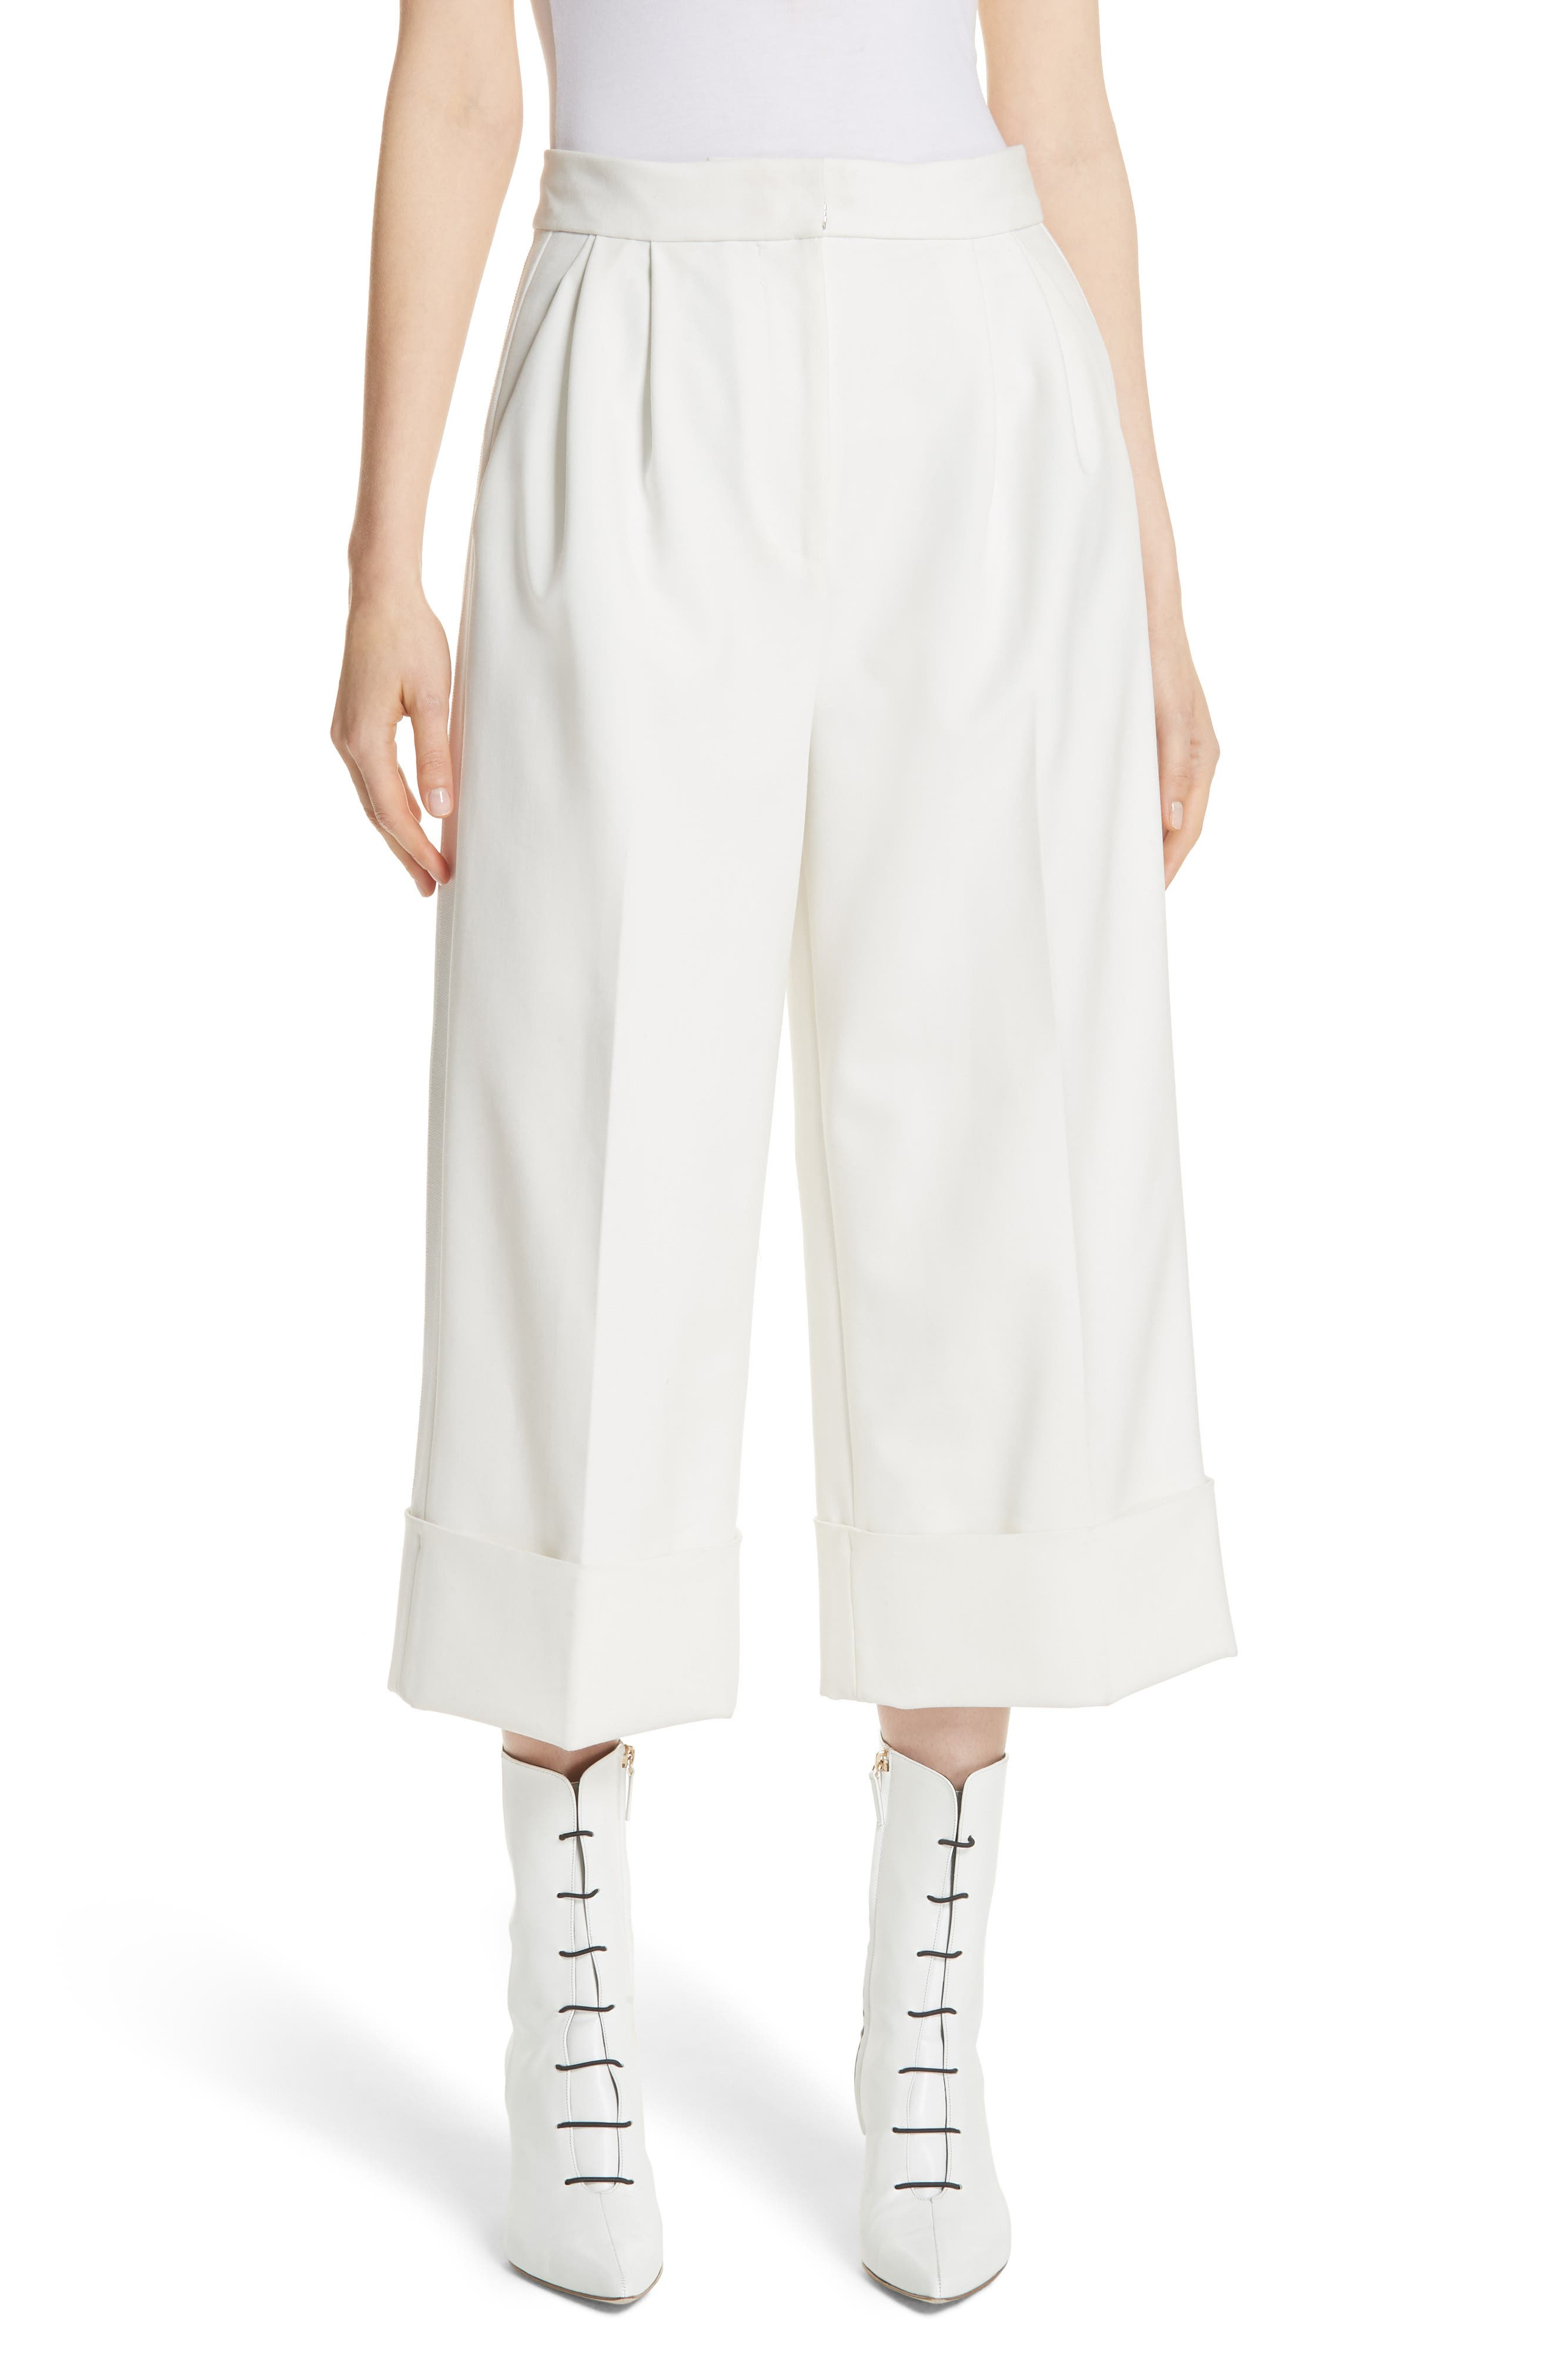 Anson Stretch Cuffed Tuxedo Pants in Ivory